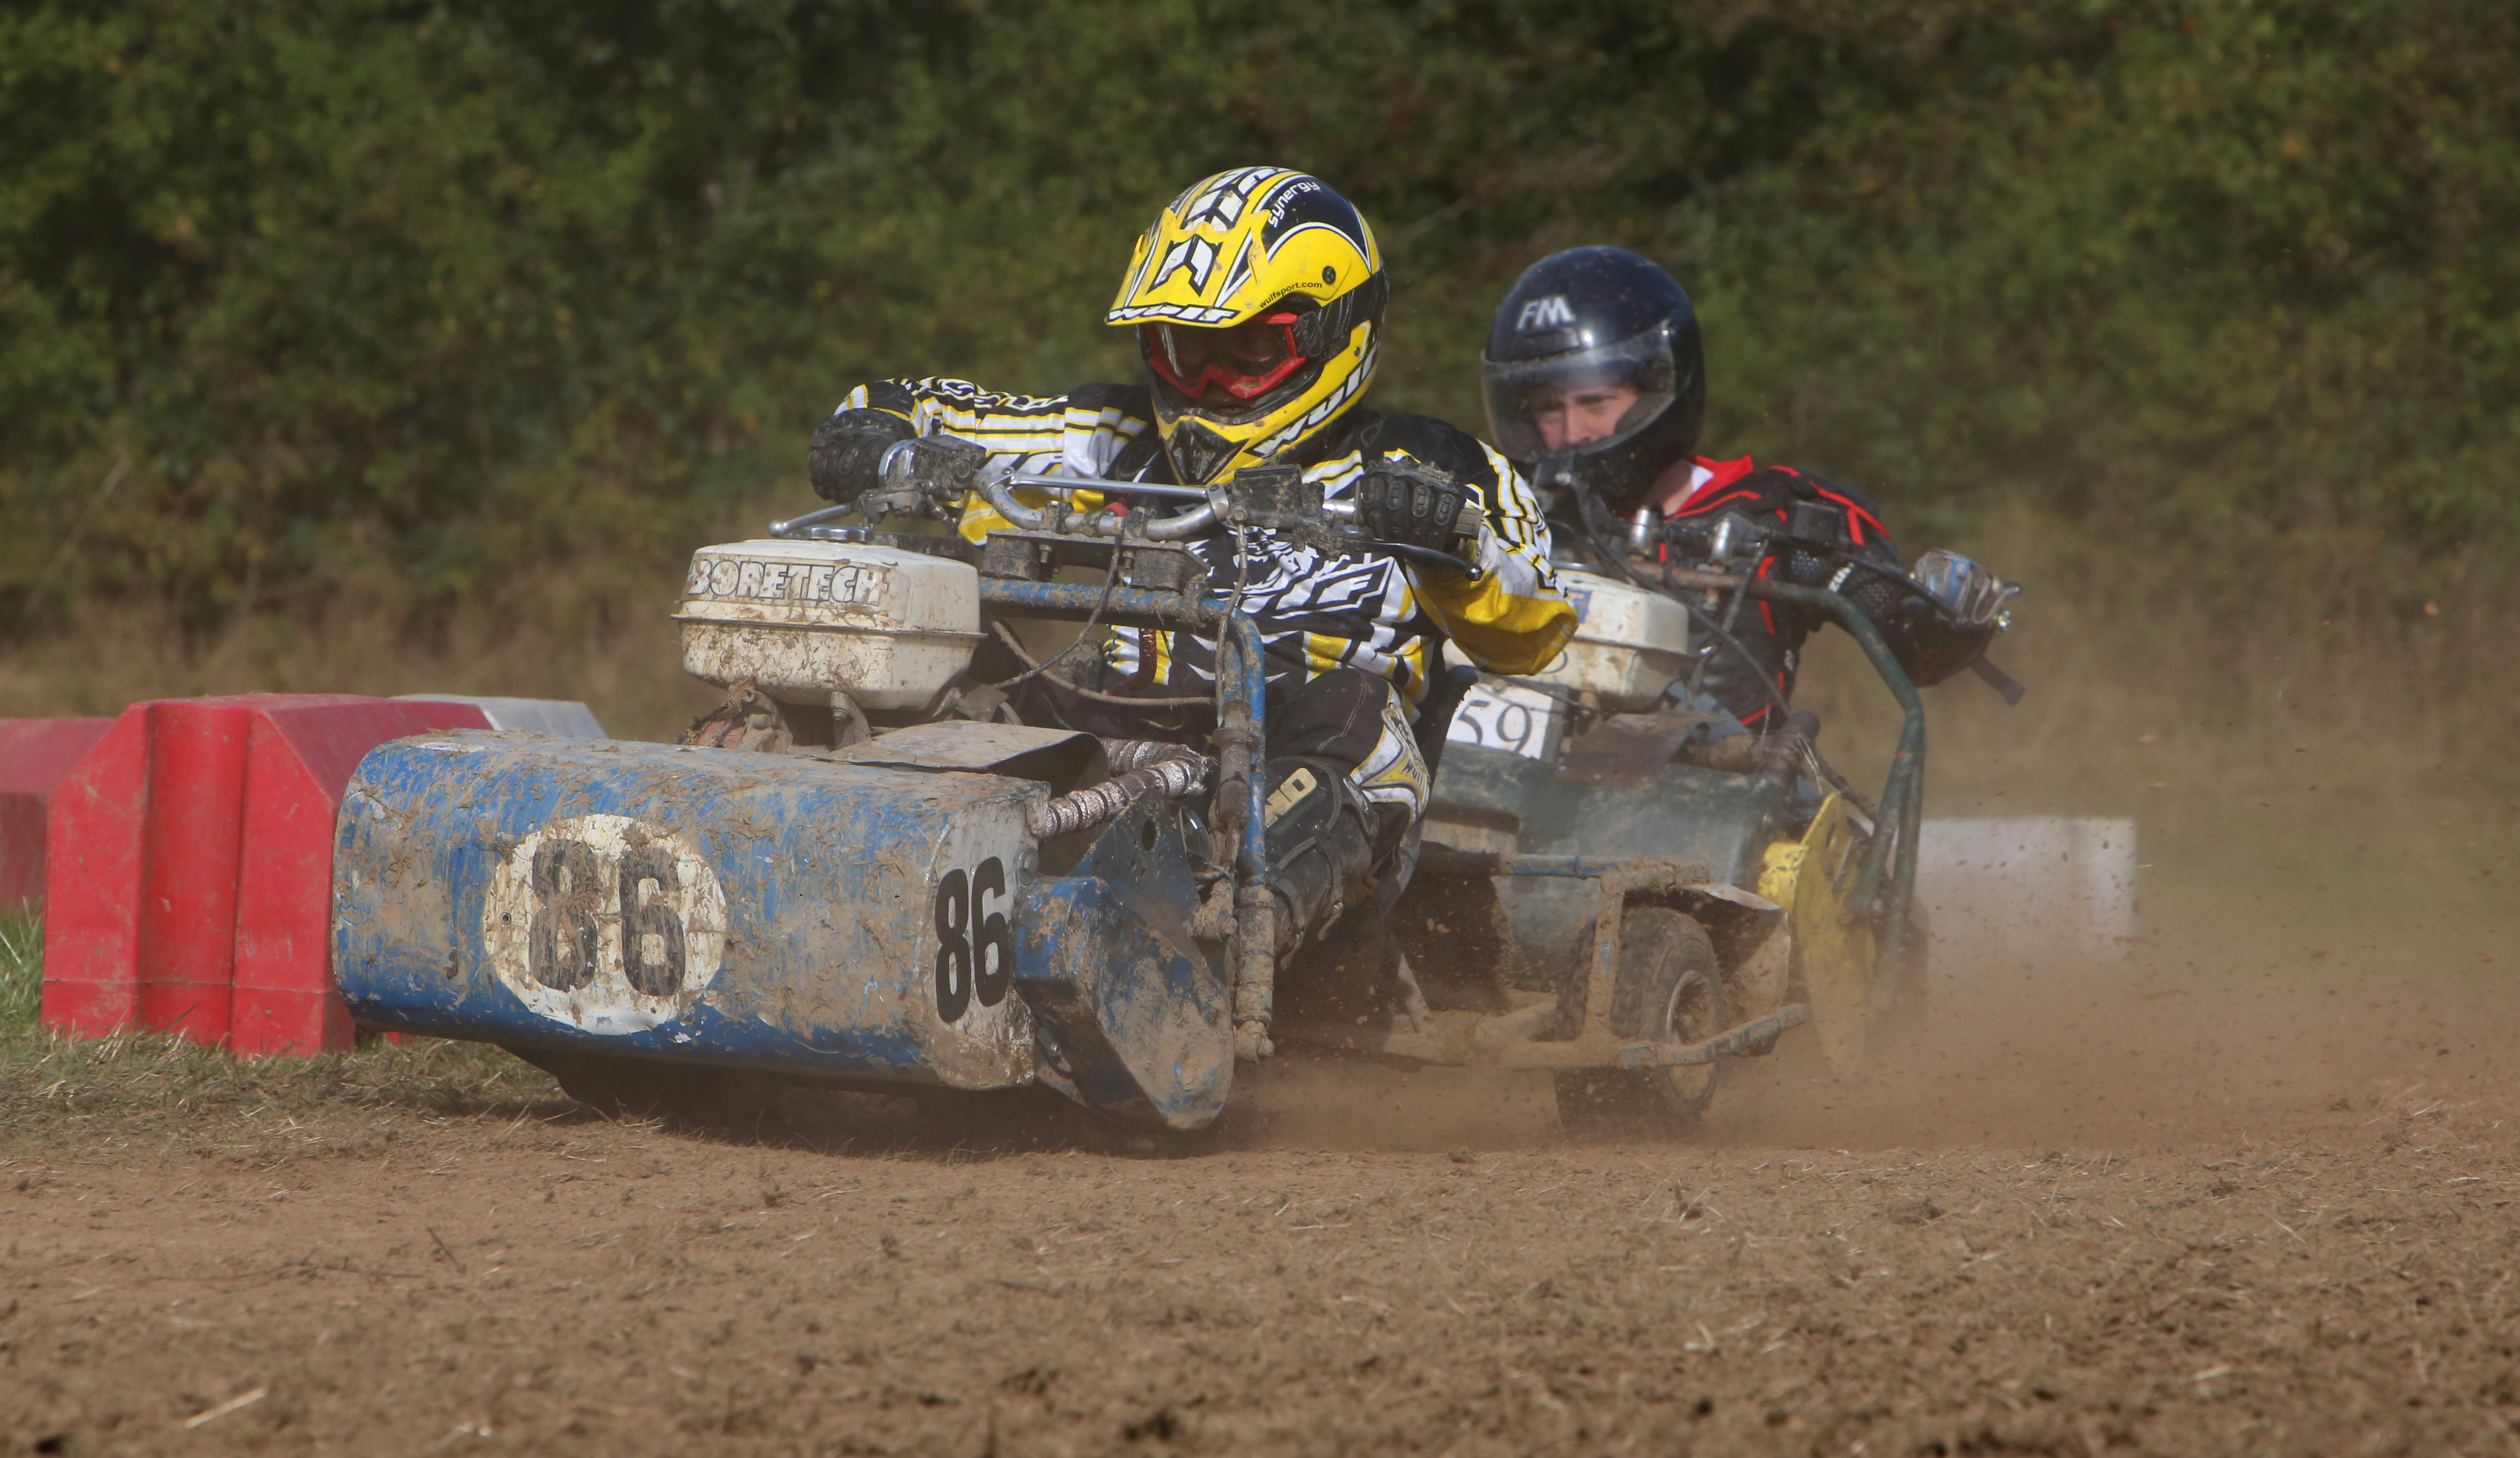 World Lawnmower Racing Championships Take Place In Uk